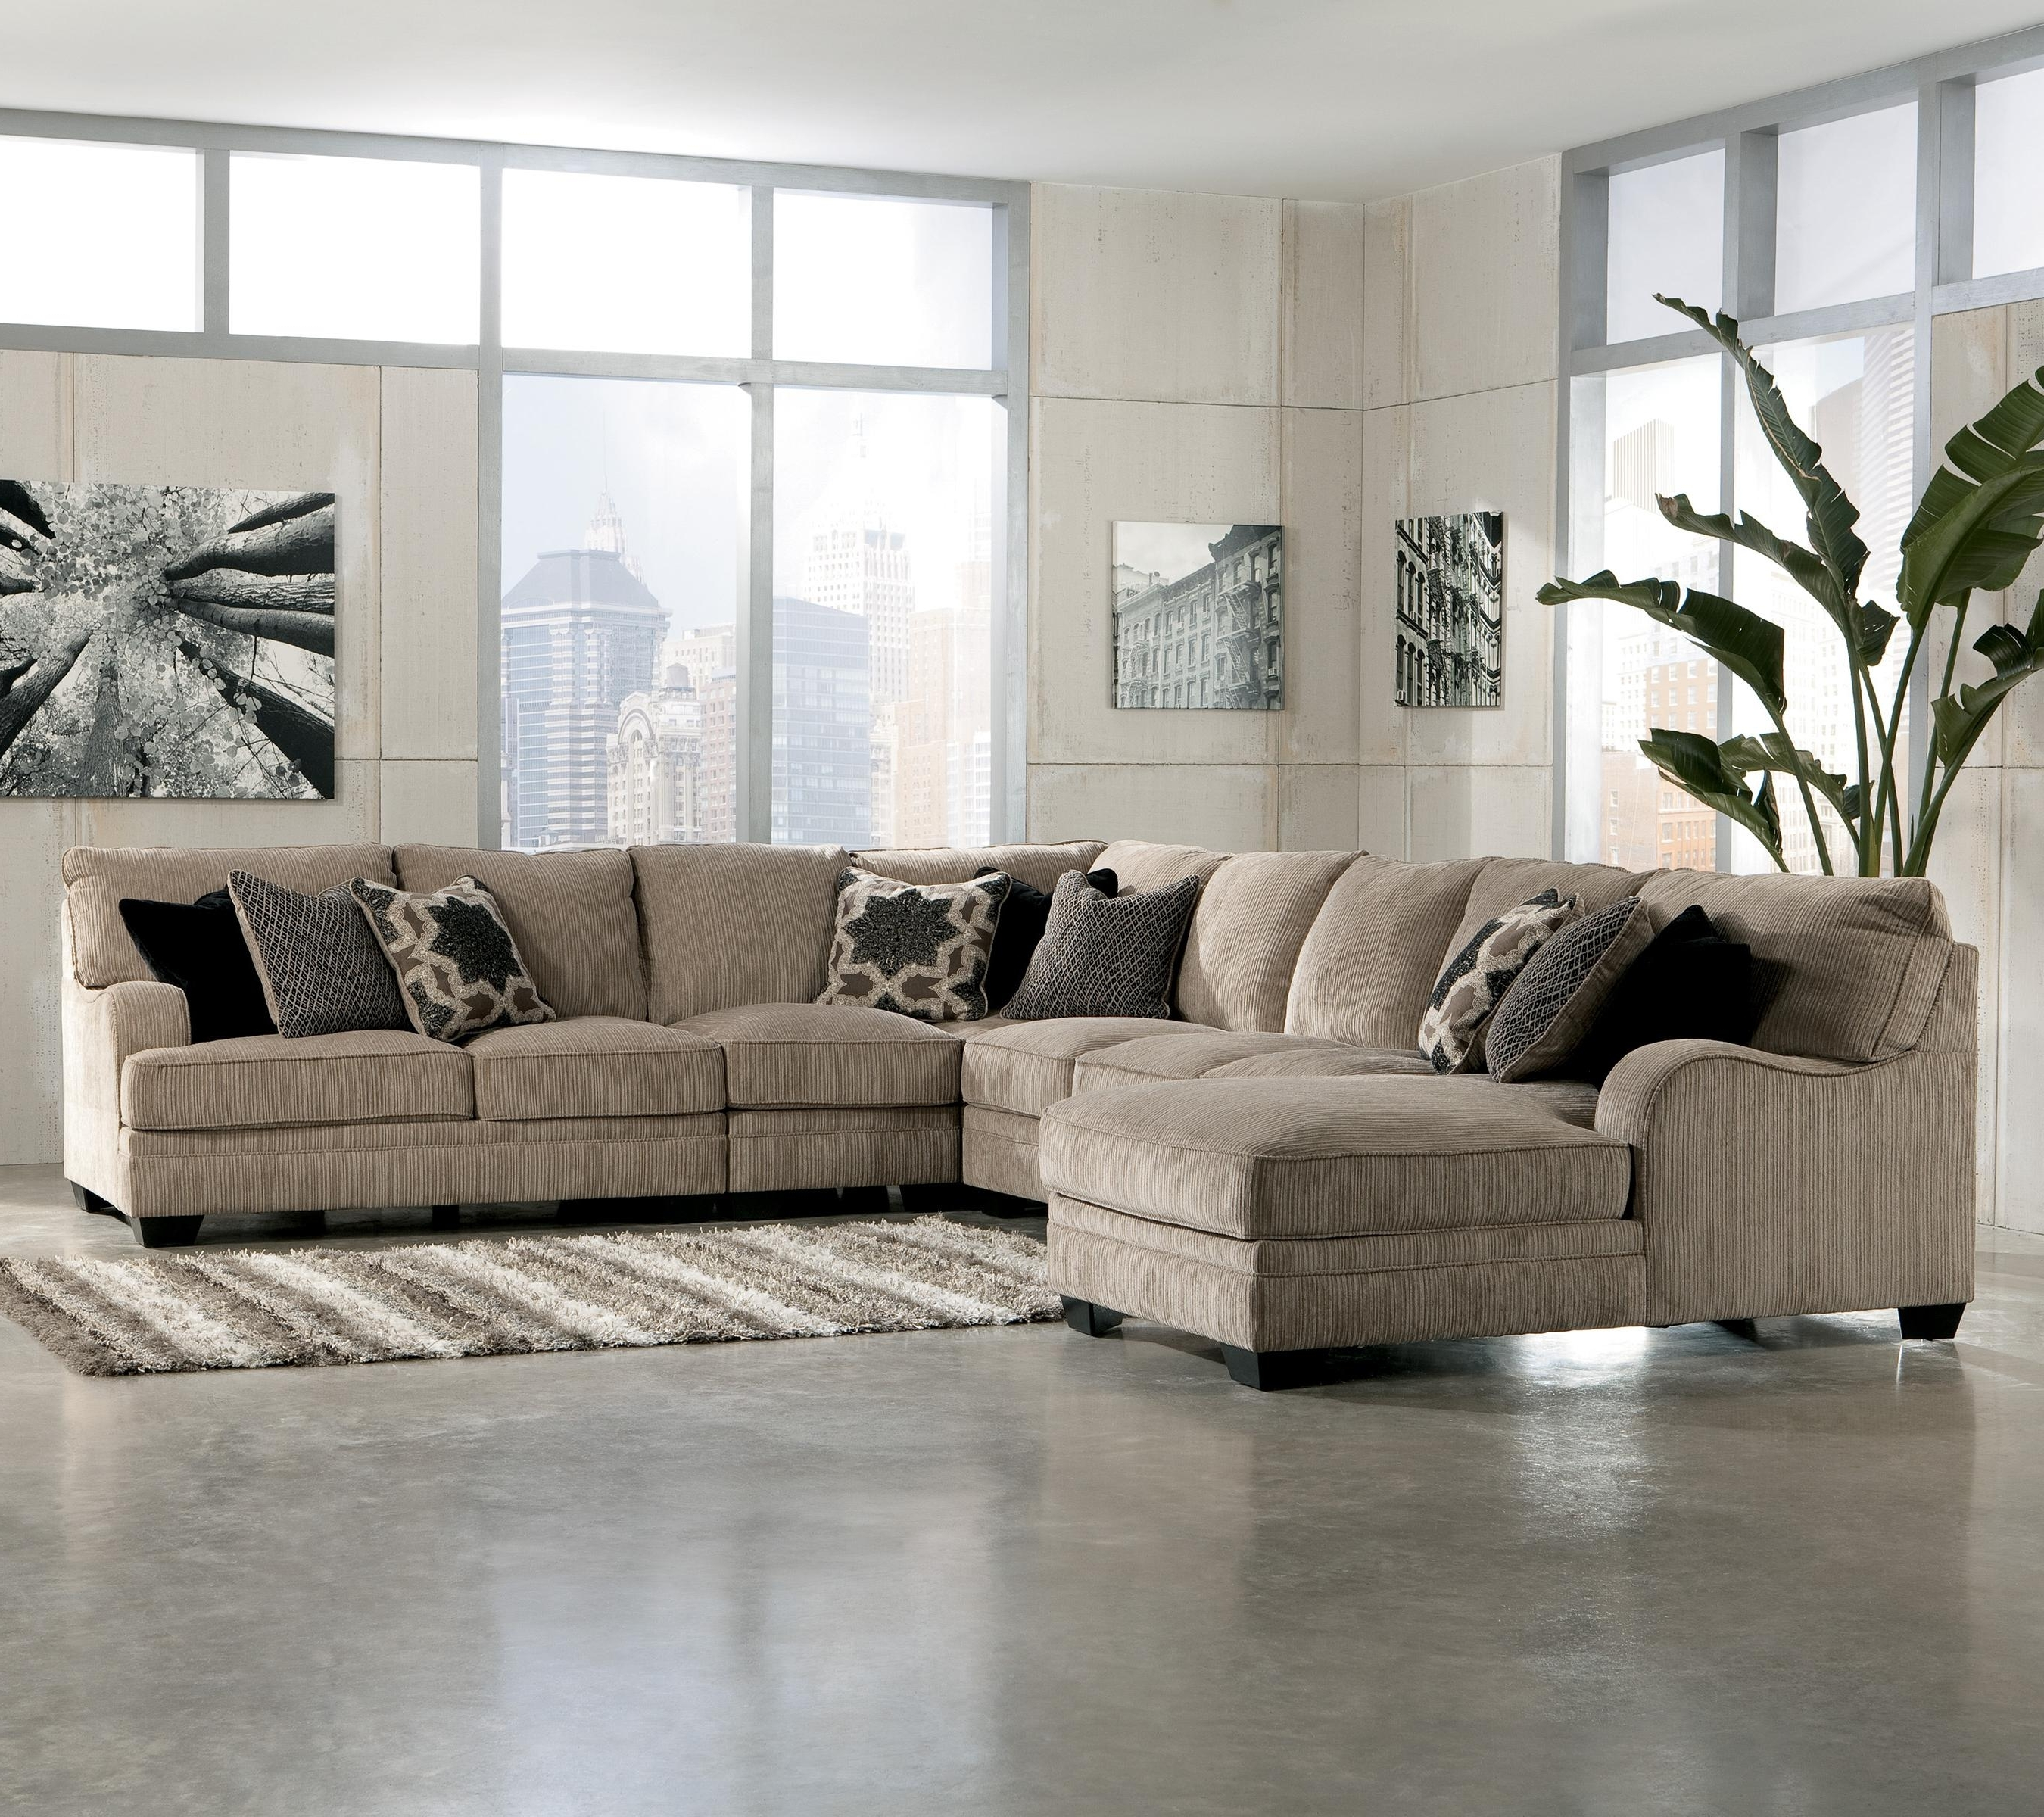 Sectional Sofas At Buffalo Ny Intended For Trendy Furniture: Ashley Furniture Charlotte Nc (View 16 of 20)